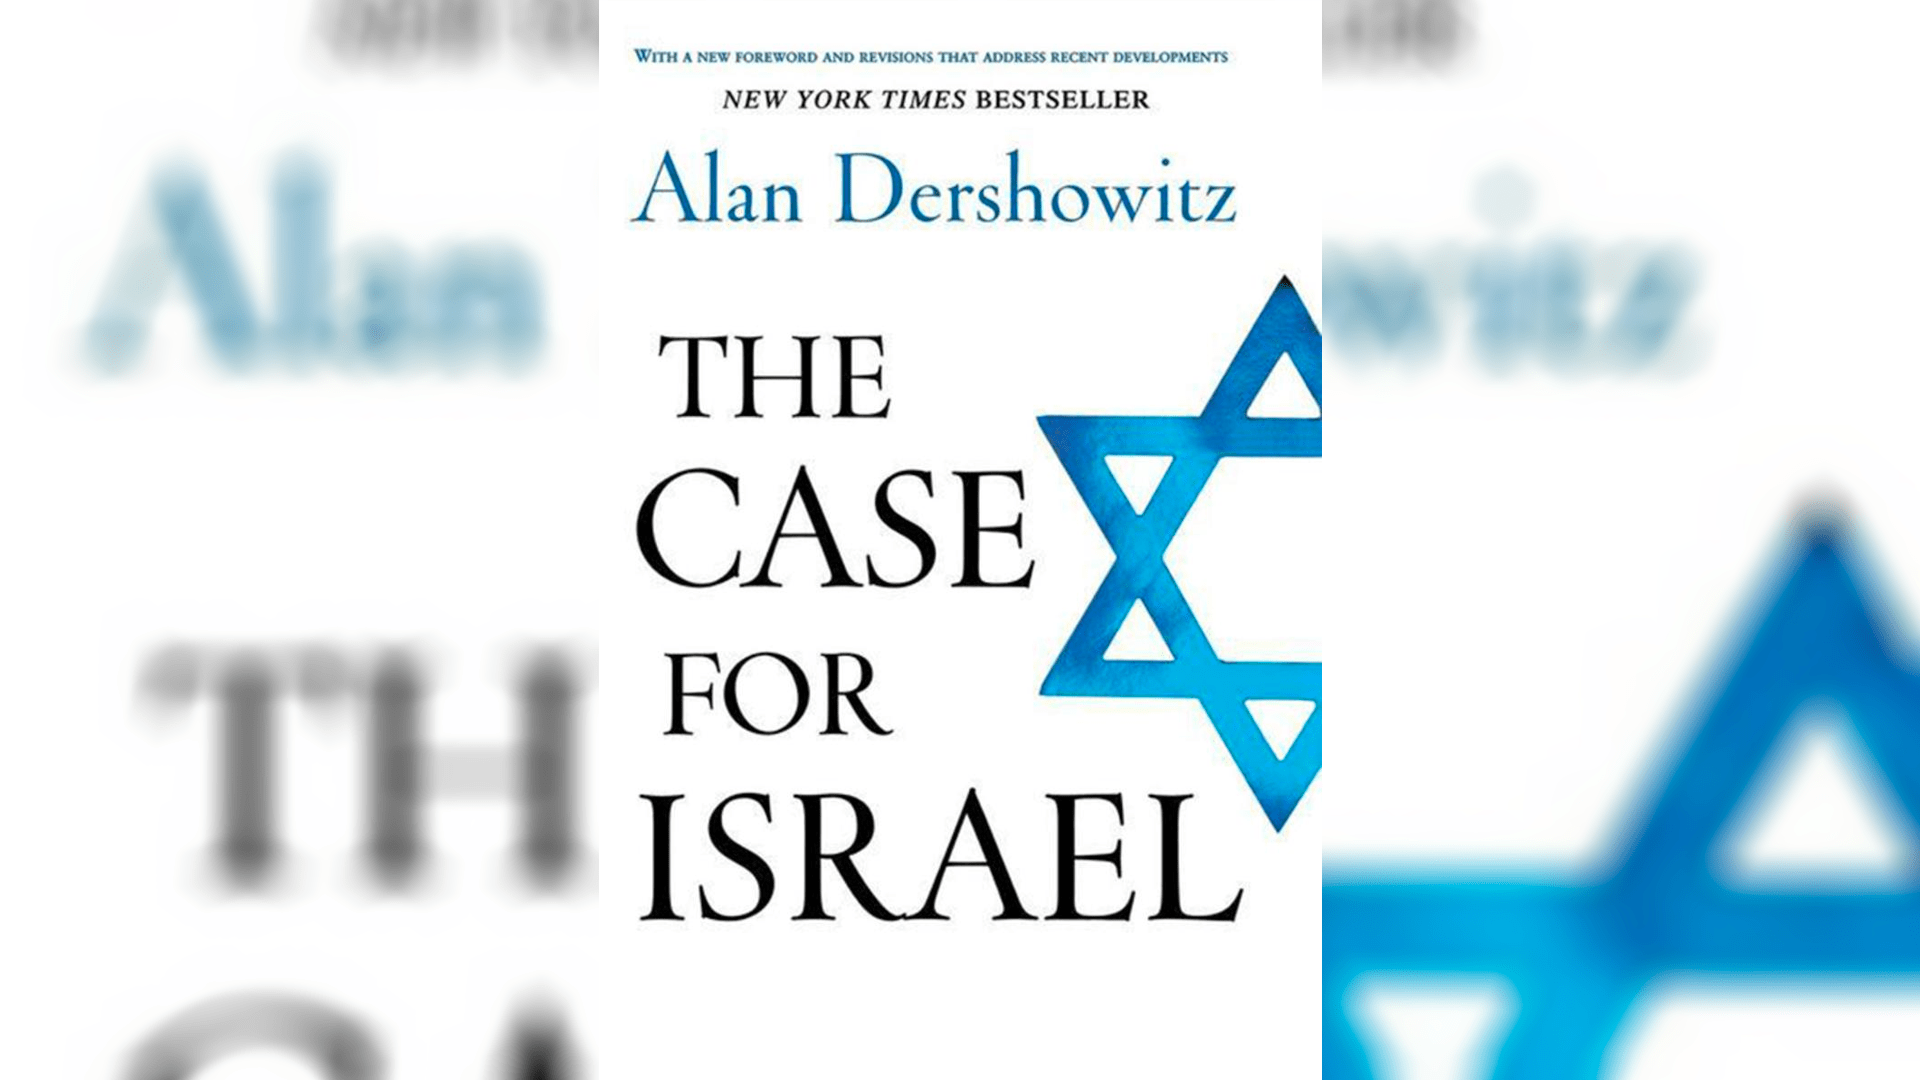 Book Review: The Case for Israel